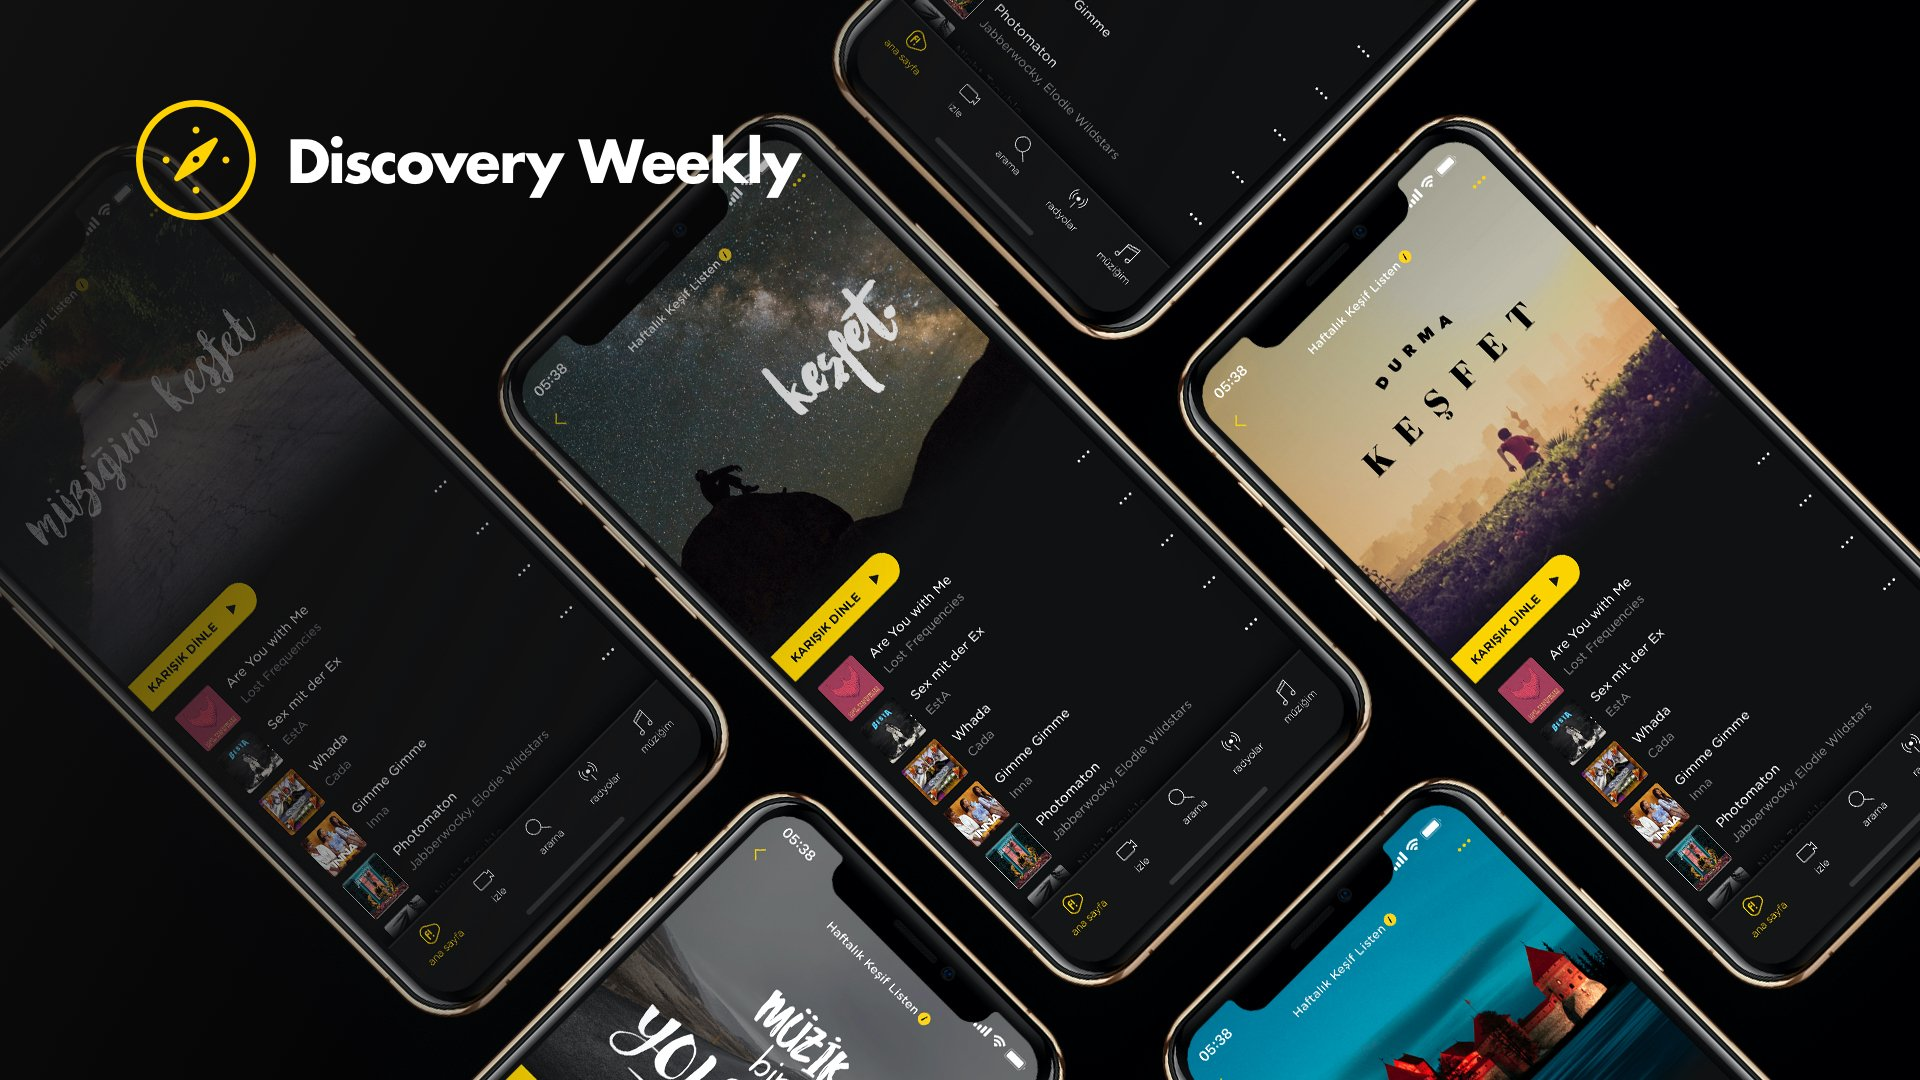 11 discovery weekly